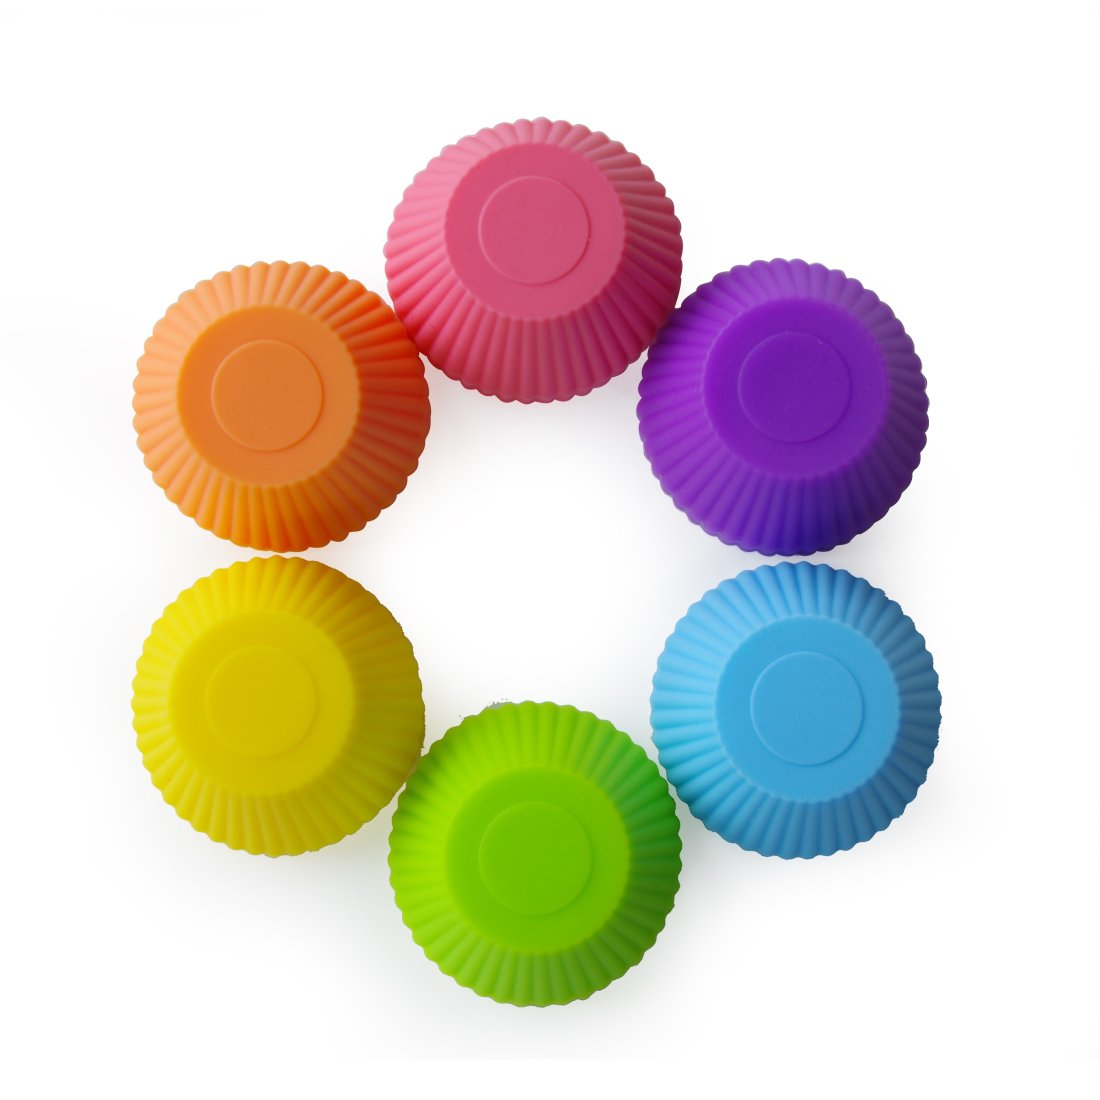 24 Pack-6 Vibrant Colors Round Mirenlife Reusable and Non-stick Mini Silicone Baking Cups//Muffin Cups//Mini Cupcake Liners//Mini Chocolate Holders//Truffle Cups